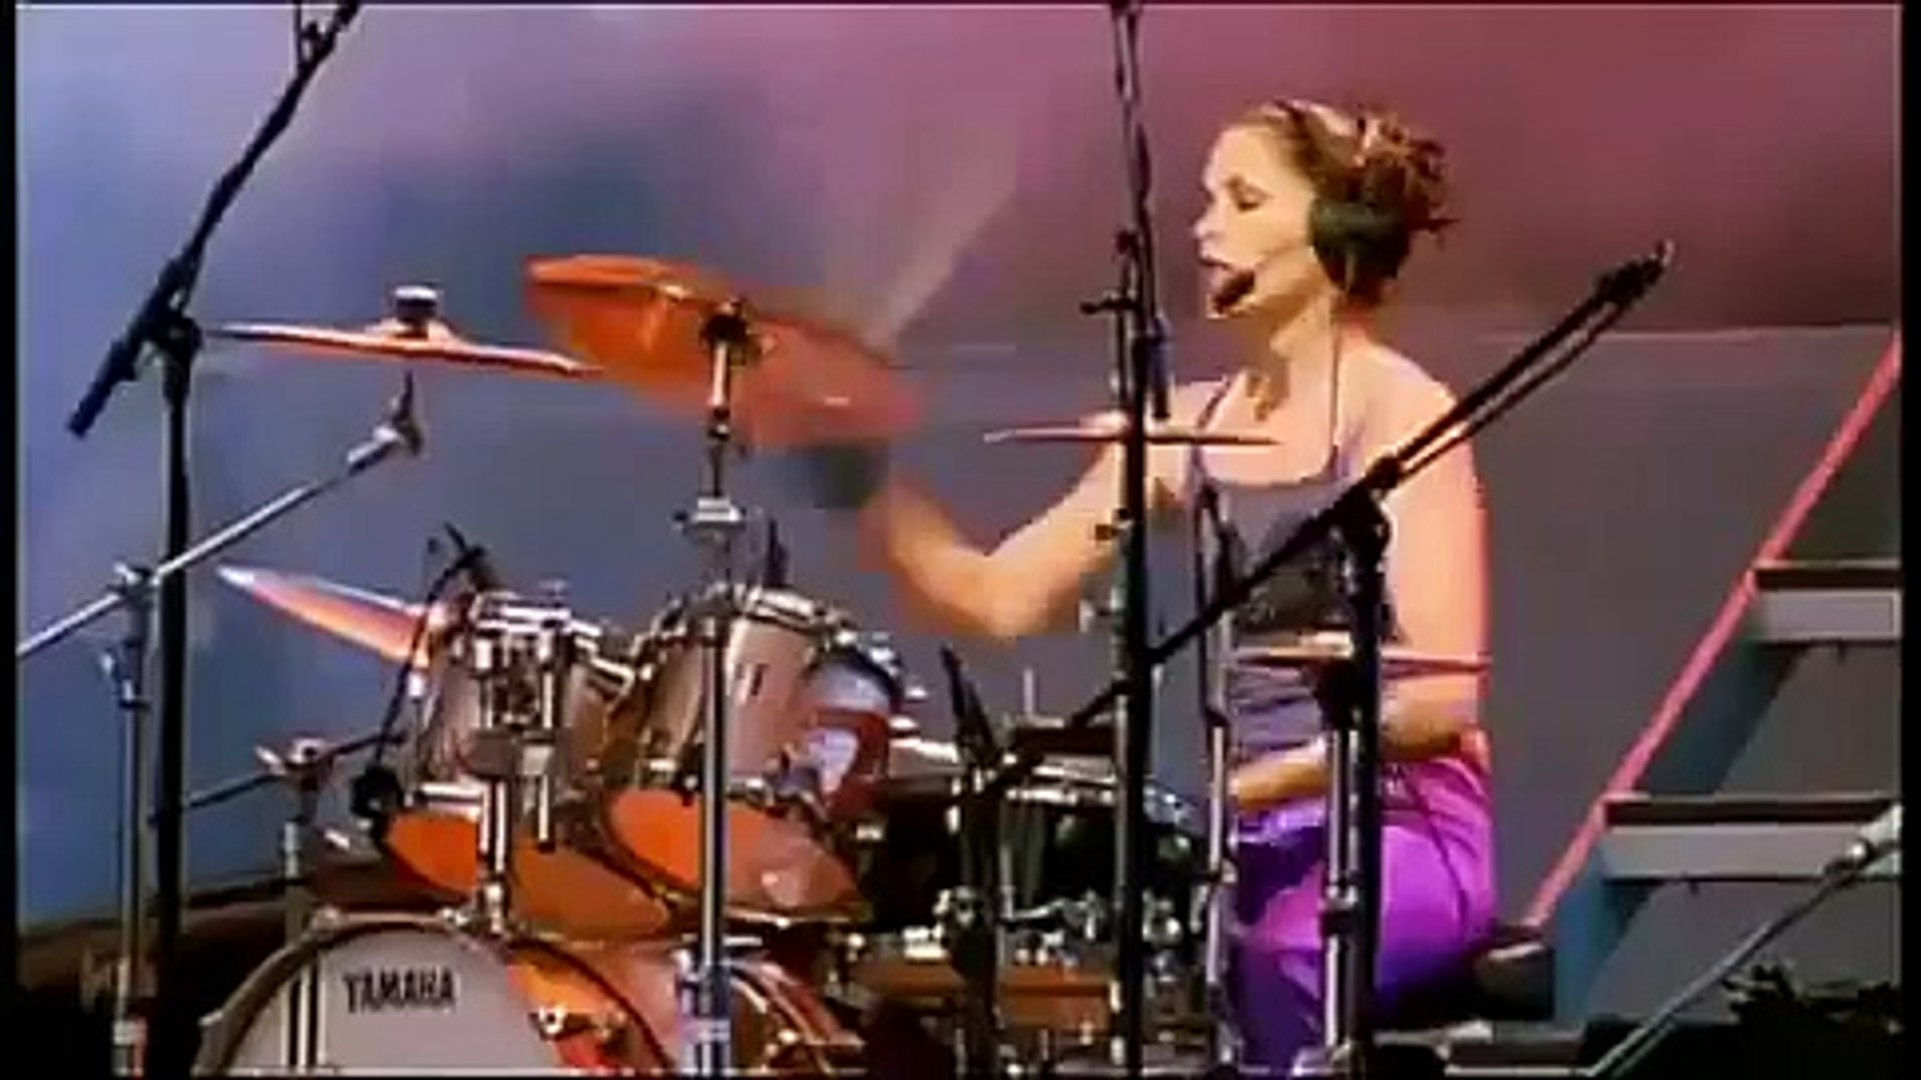 The Corrs - Live At Lansdowne Road 2000 [Full Concert] 4